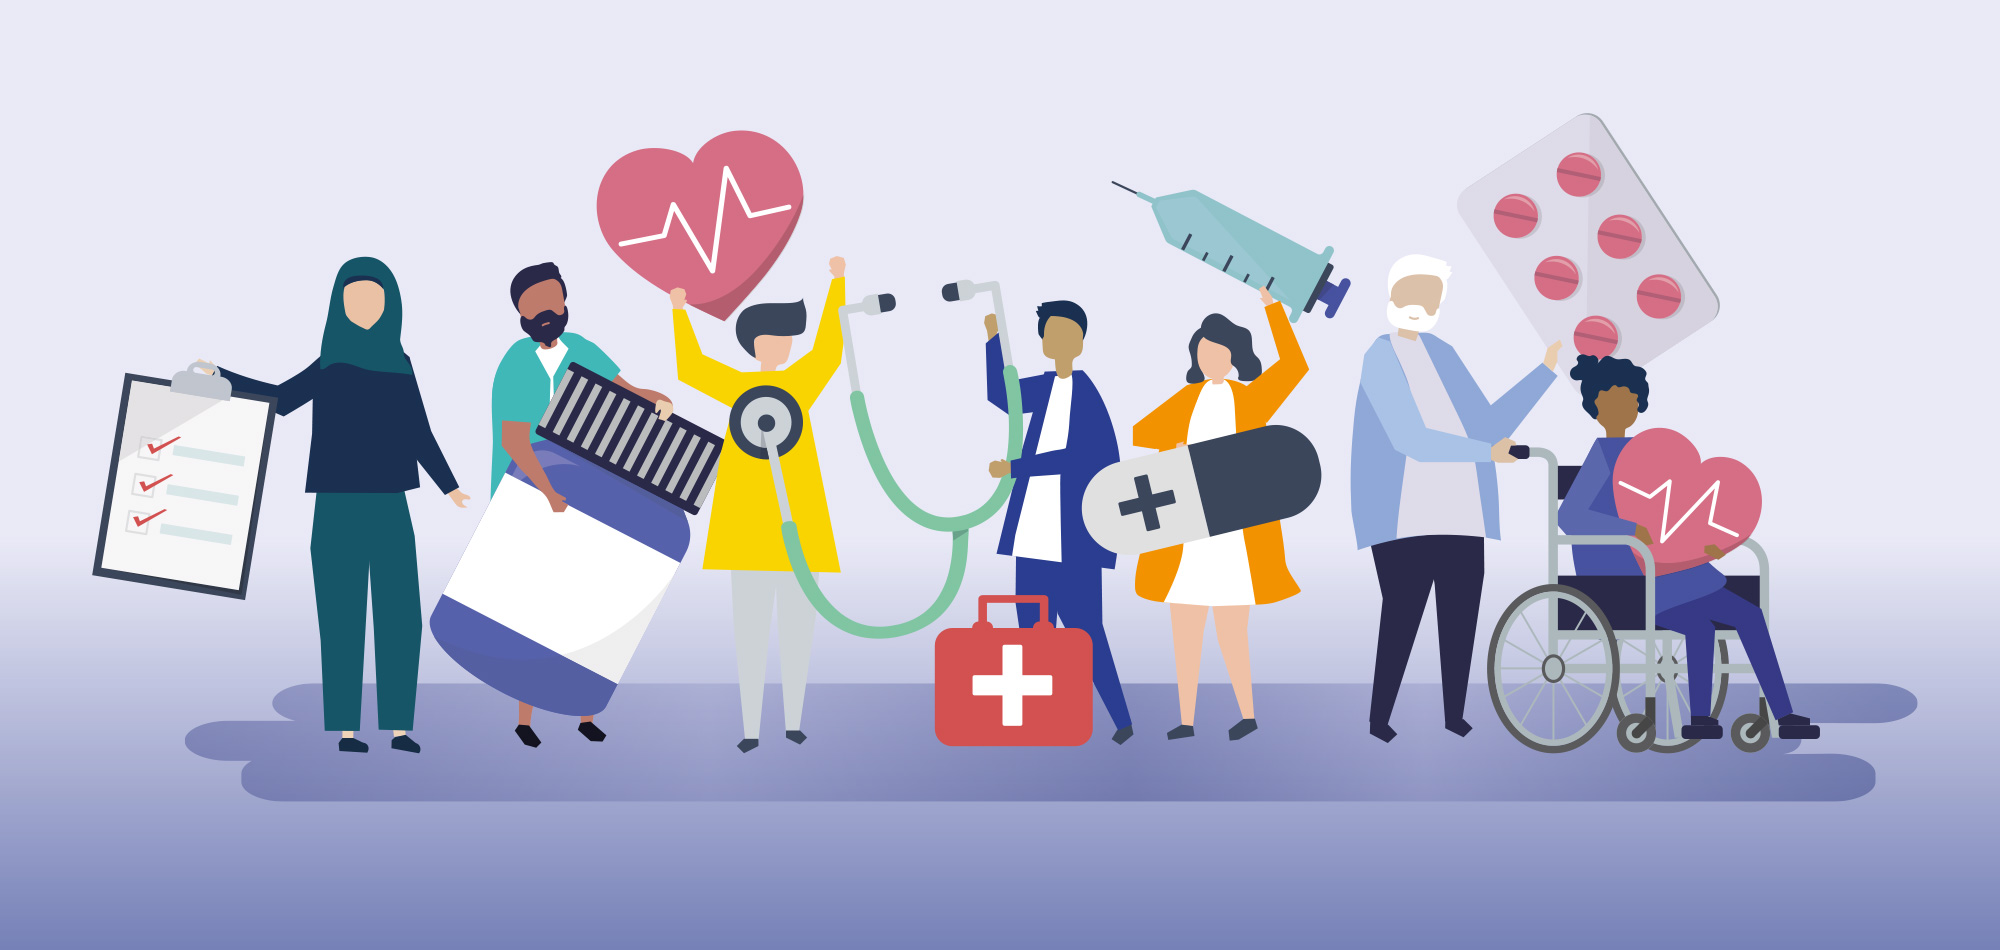 People from different backgrounds hold a variety of objects related to healthcare, such as medication, charts, medical kits etc.